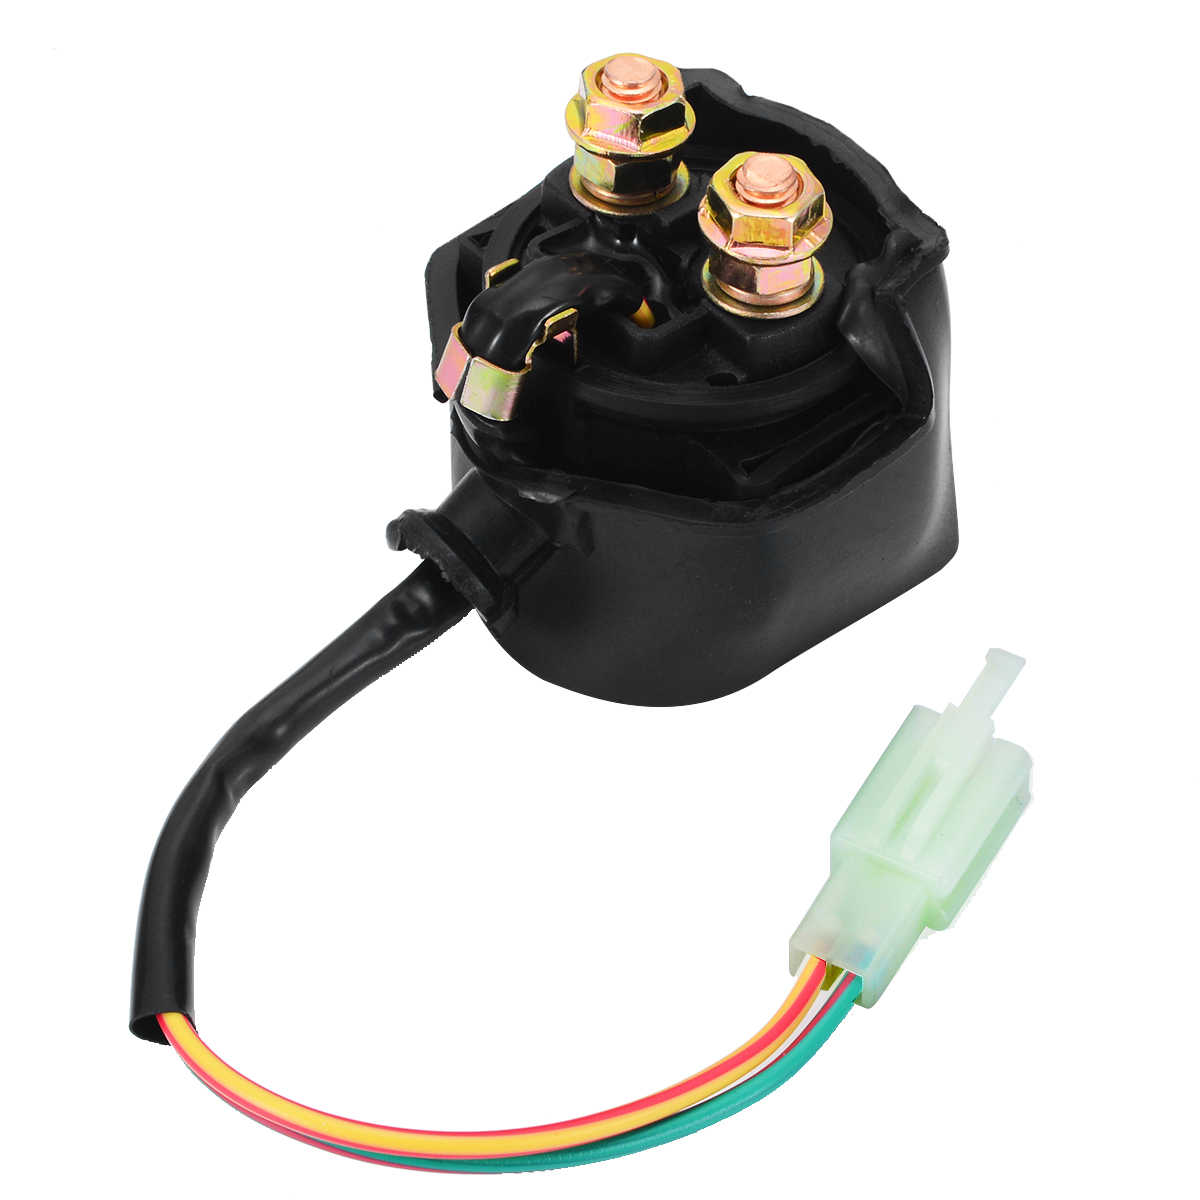 1pc 12V 2pin Starter Relay Solenoid 20W 2 Wires For Chinese GY6 Scooter Moped ATV 50cc 125cc 150cc